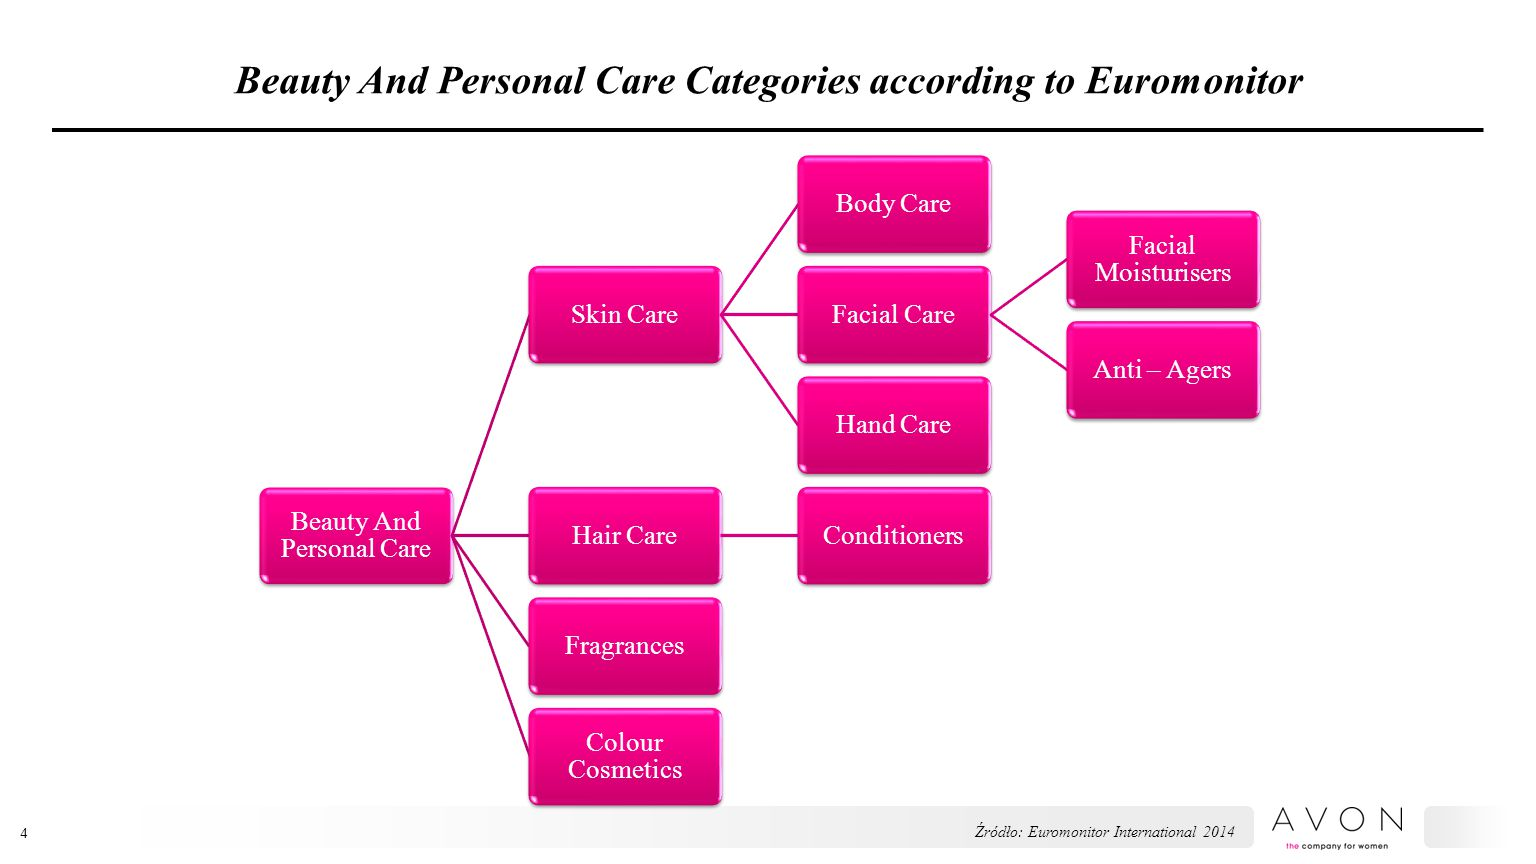 Beauty And Personal Care Categories according to Euromonitor